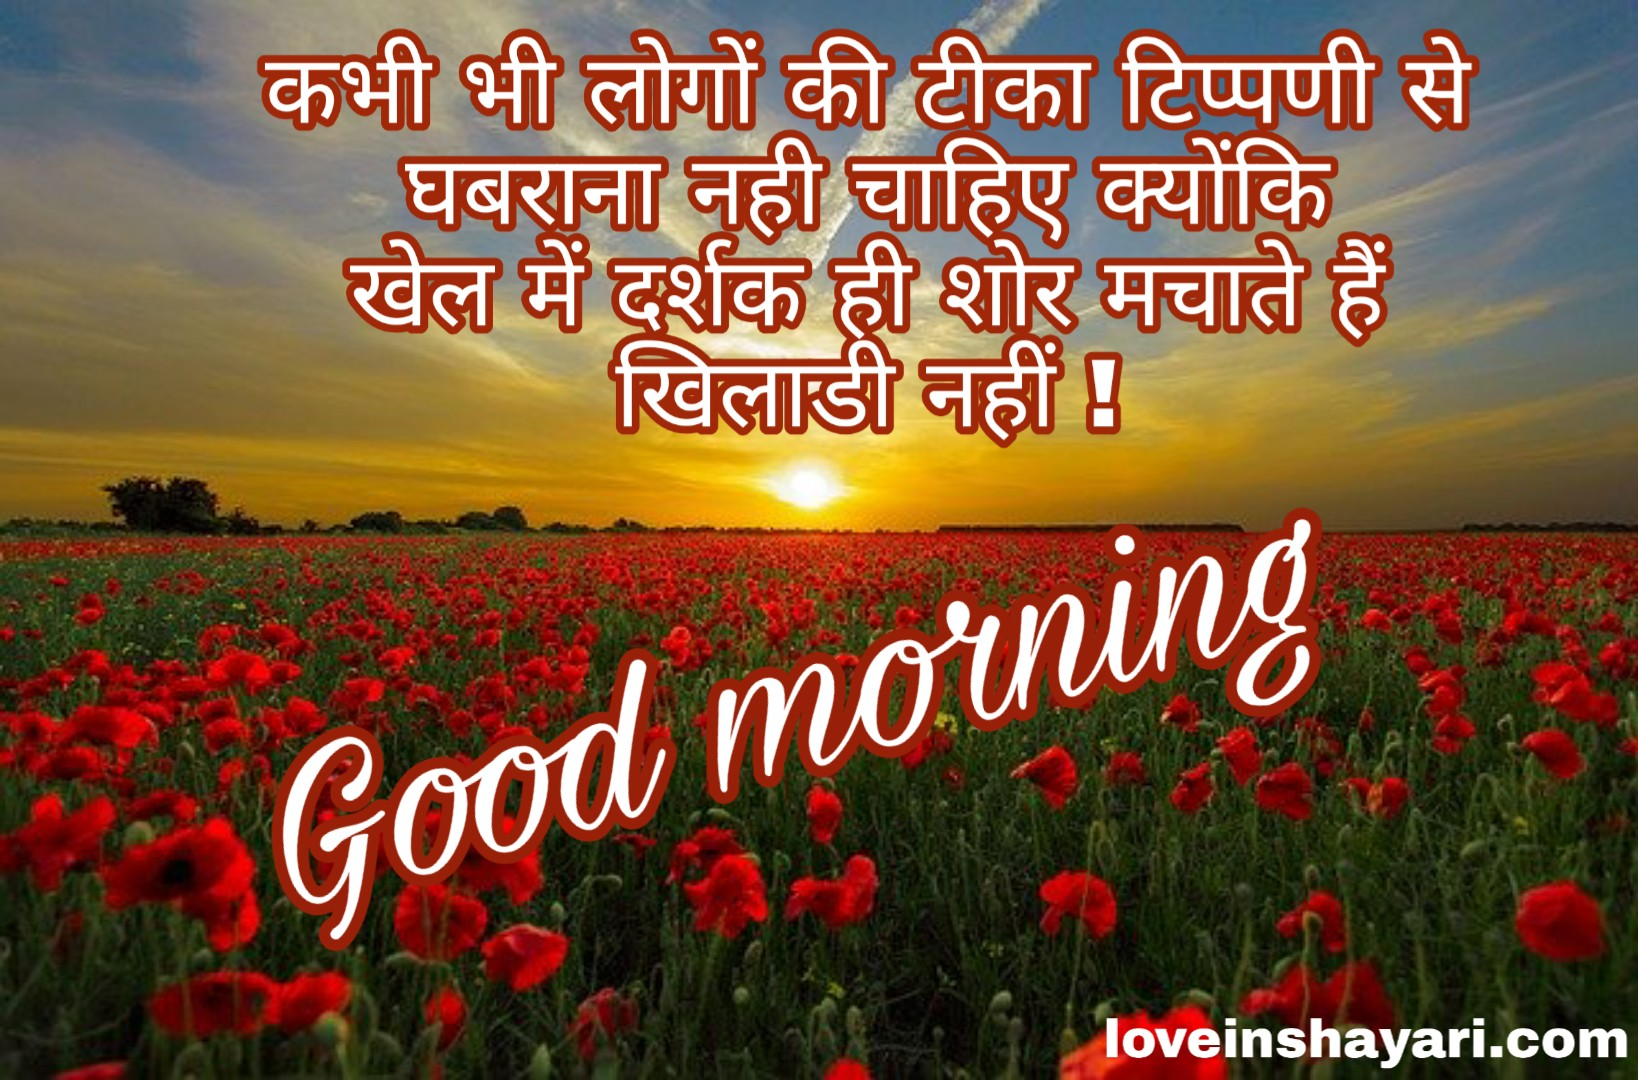 Photo of Good morning whatsapp status in hindi